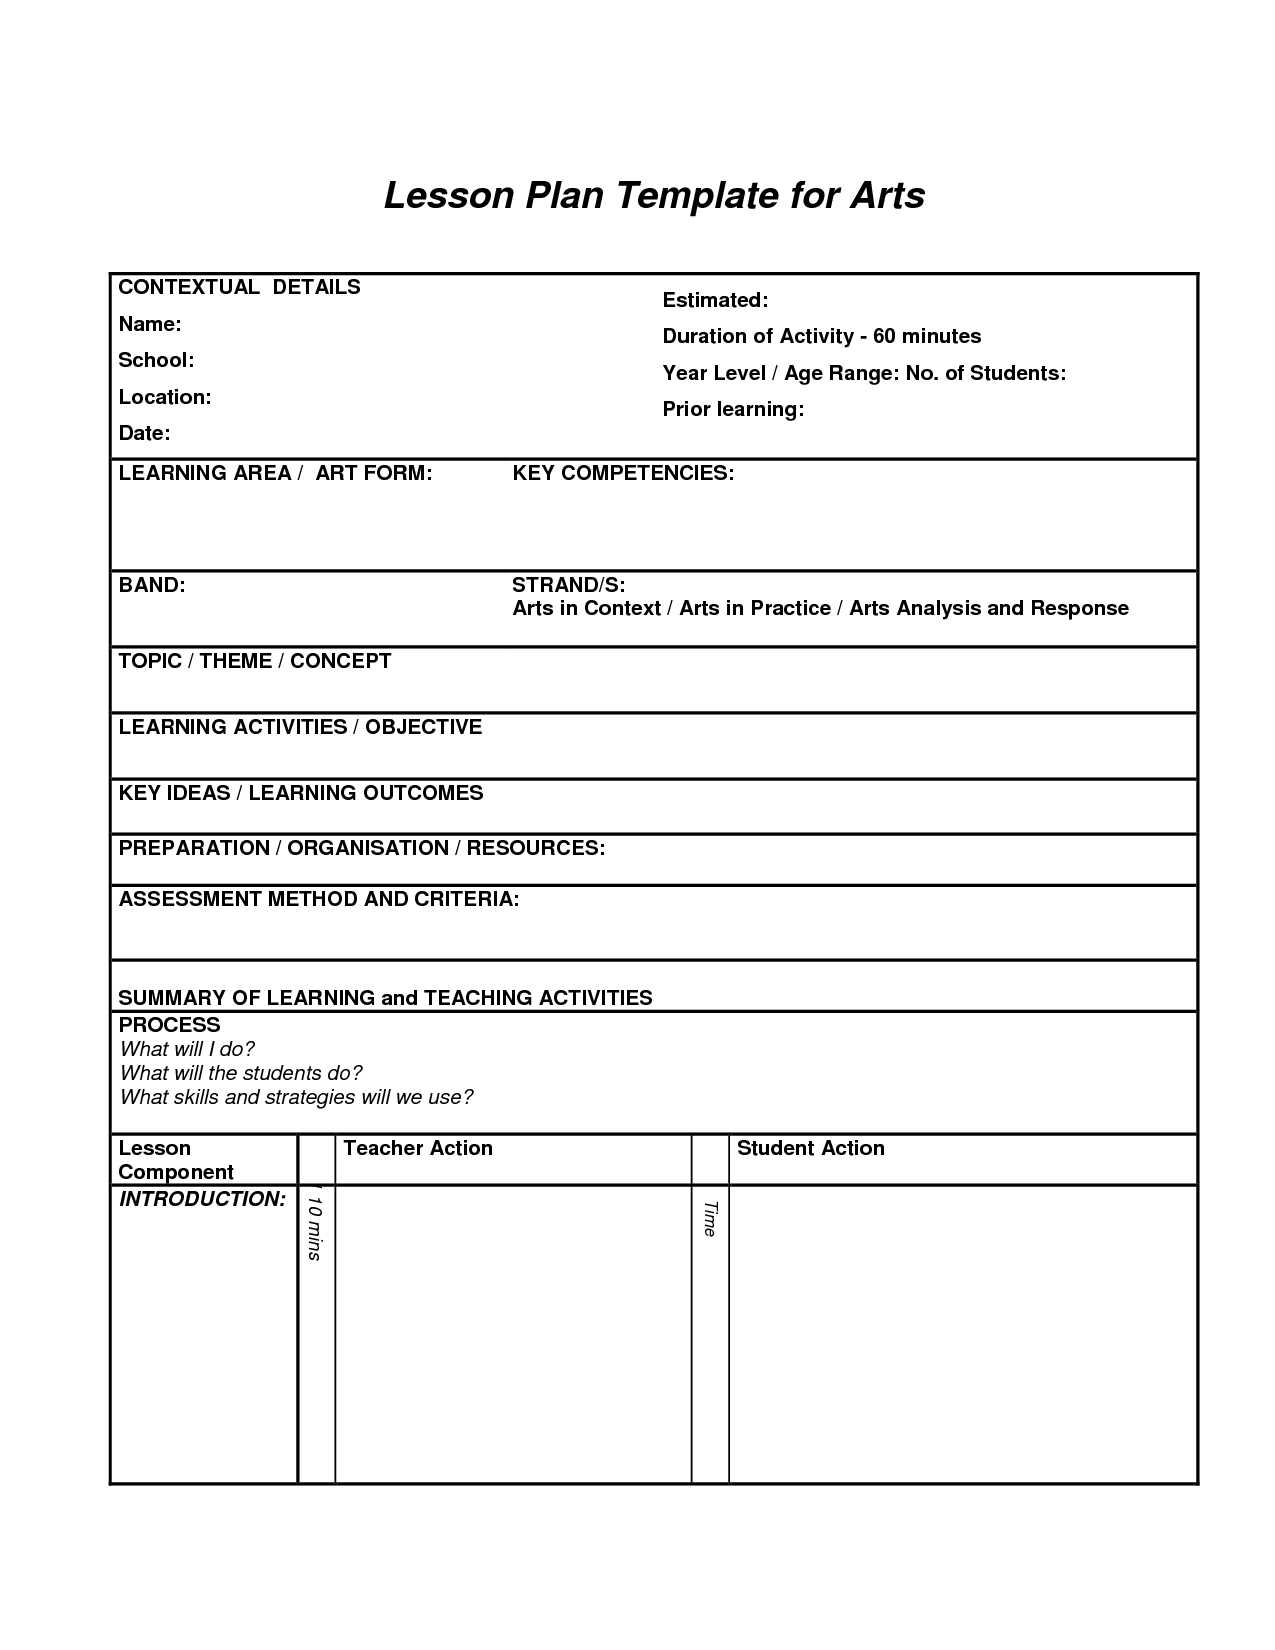 Lesson plan template for arts art education essentials for Project activity plan template